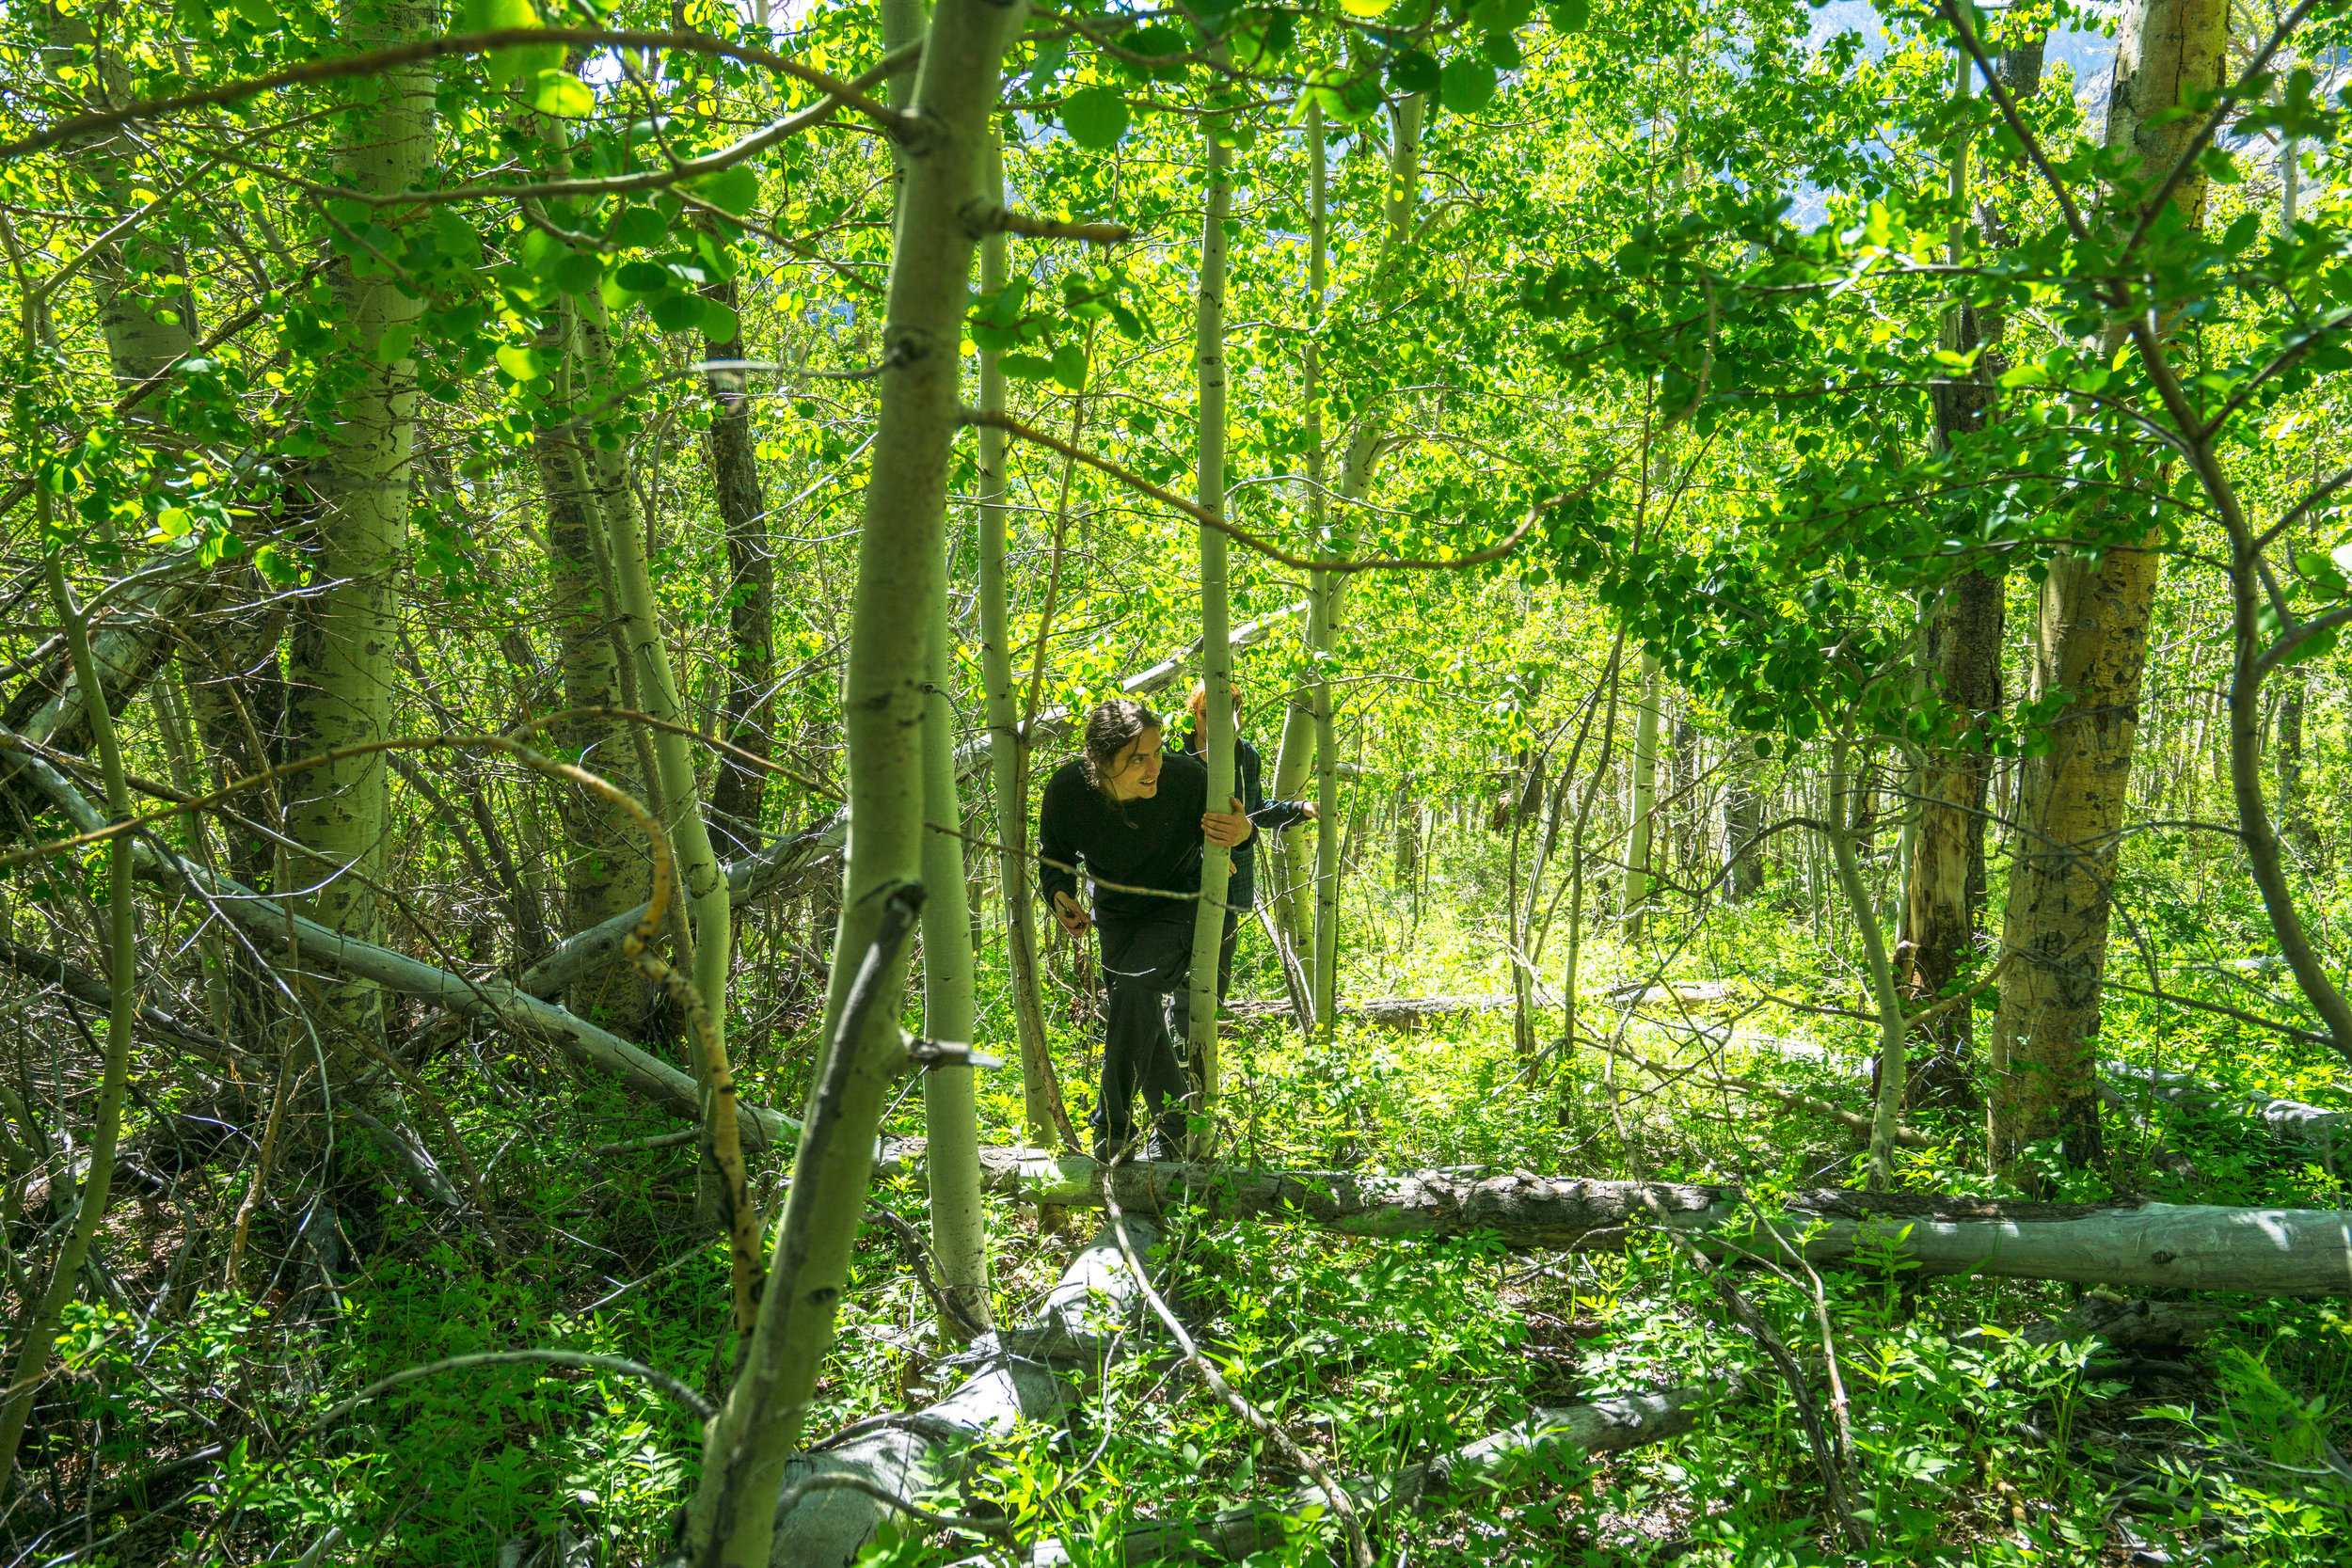 With the rest of the crew now awake, we head off to a dense strip of Cottonwoods running along a mountainside creek.